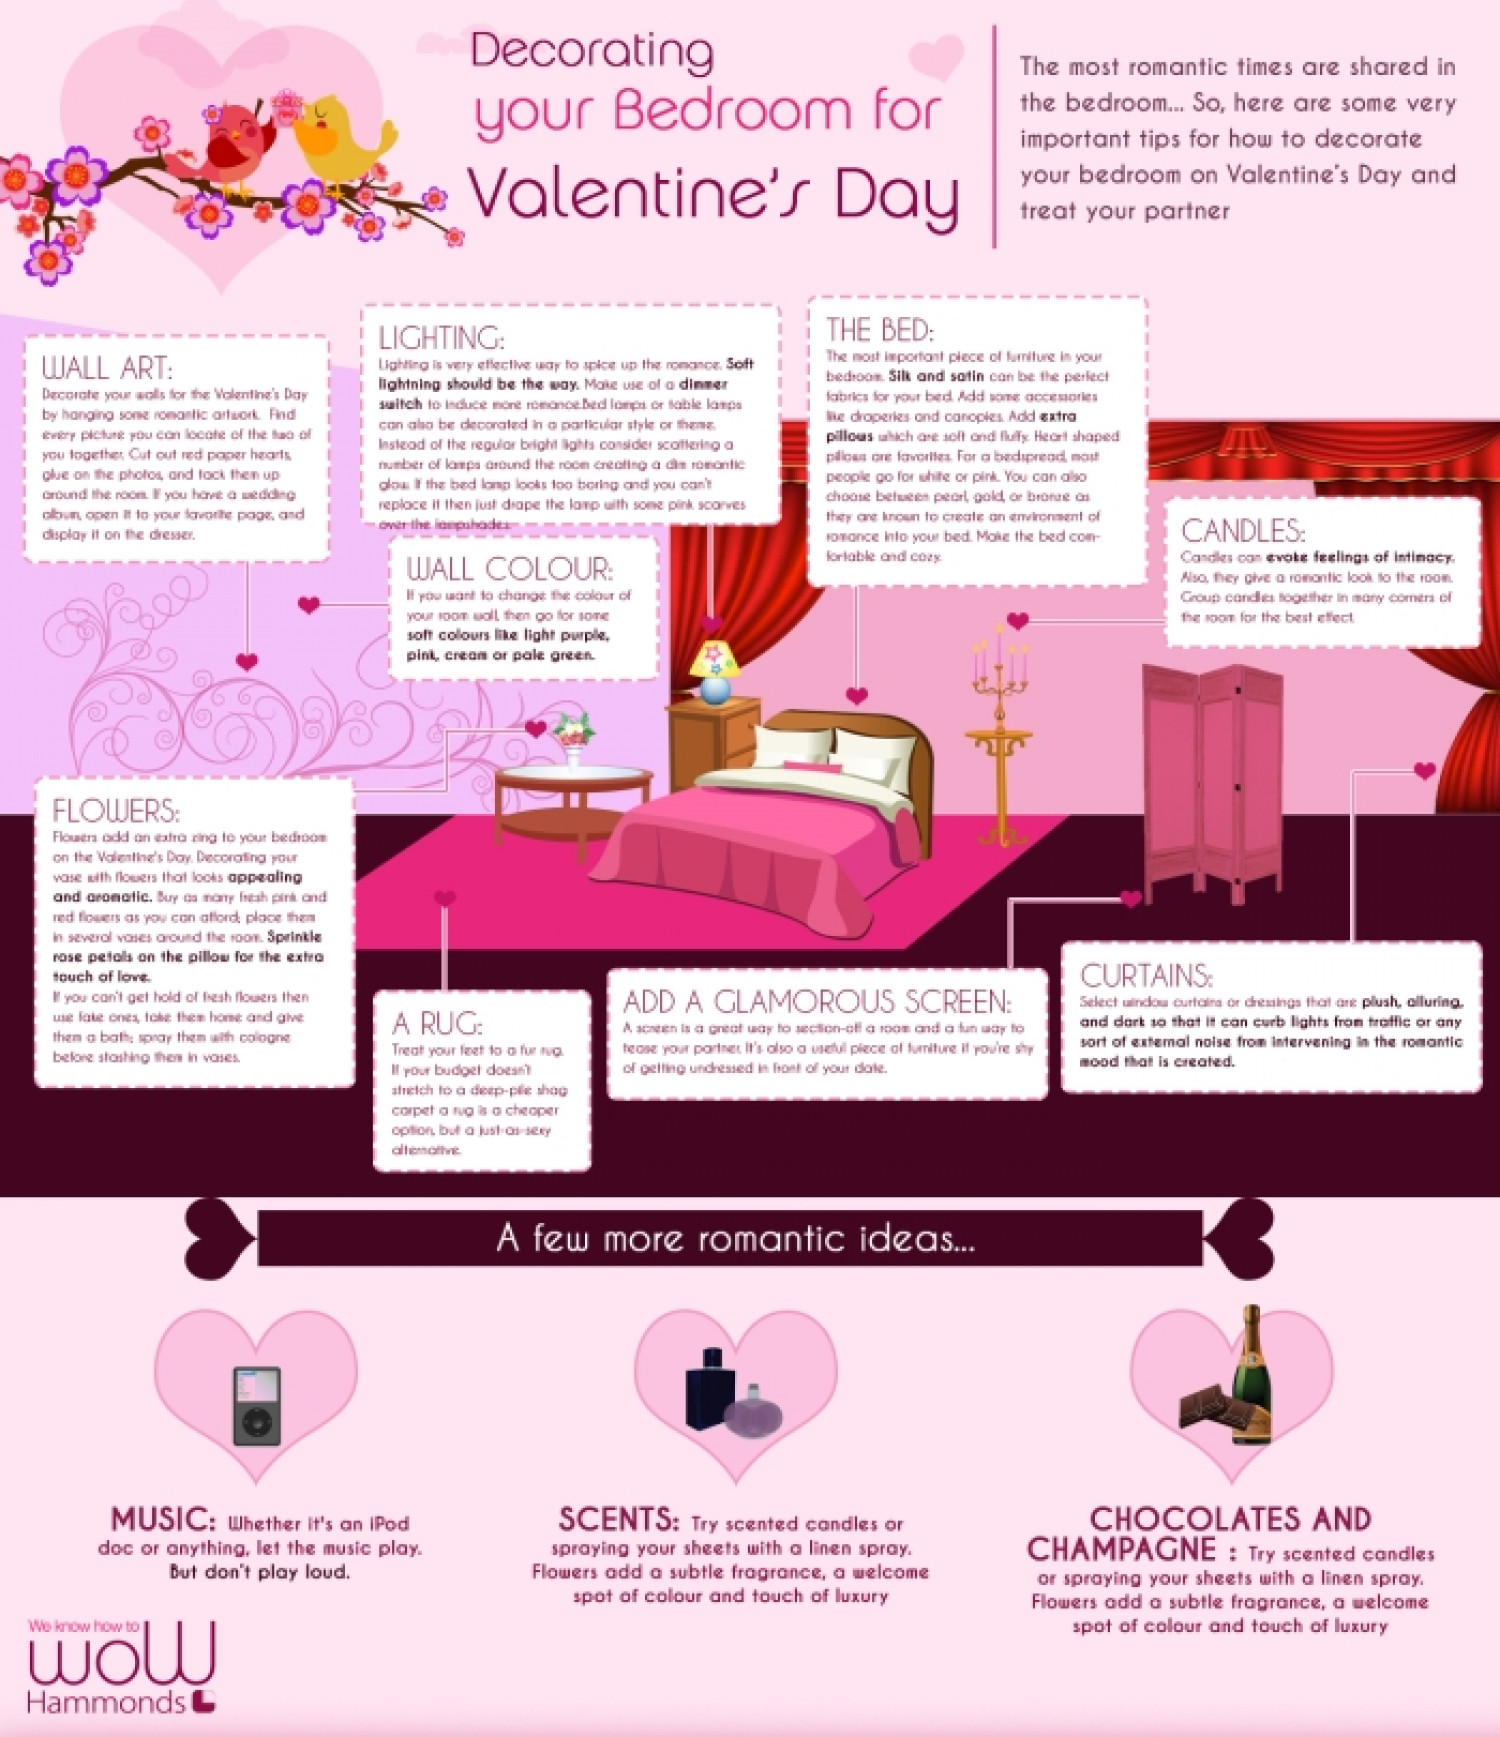 Decorating your Bedroom for Valentine\u0027s Day | Visual.ly